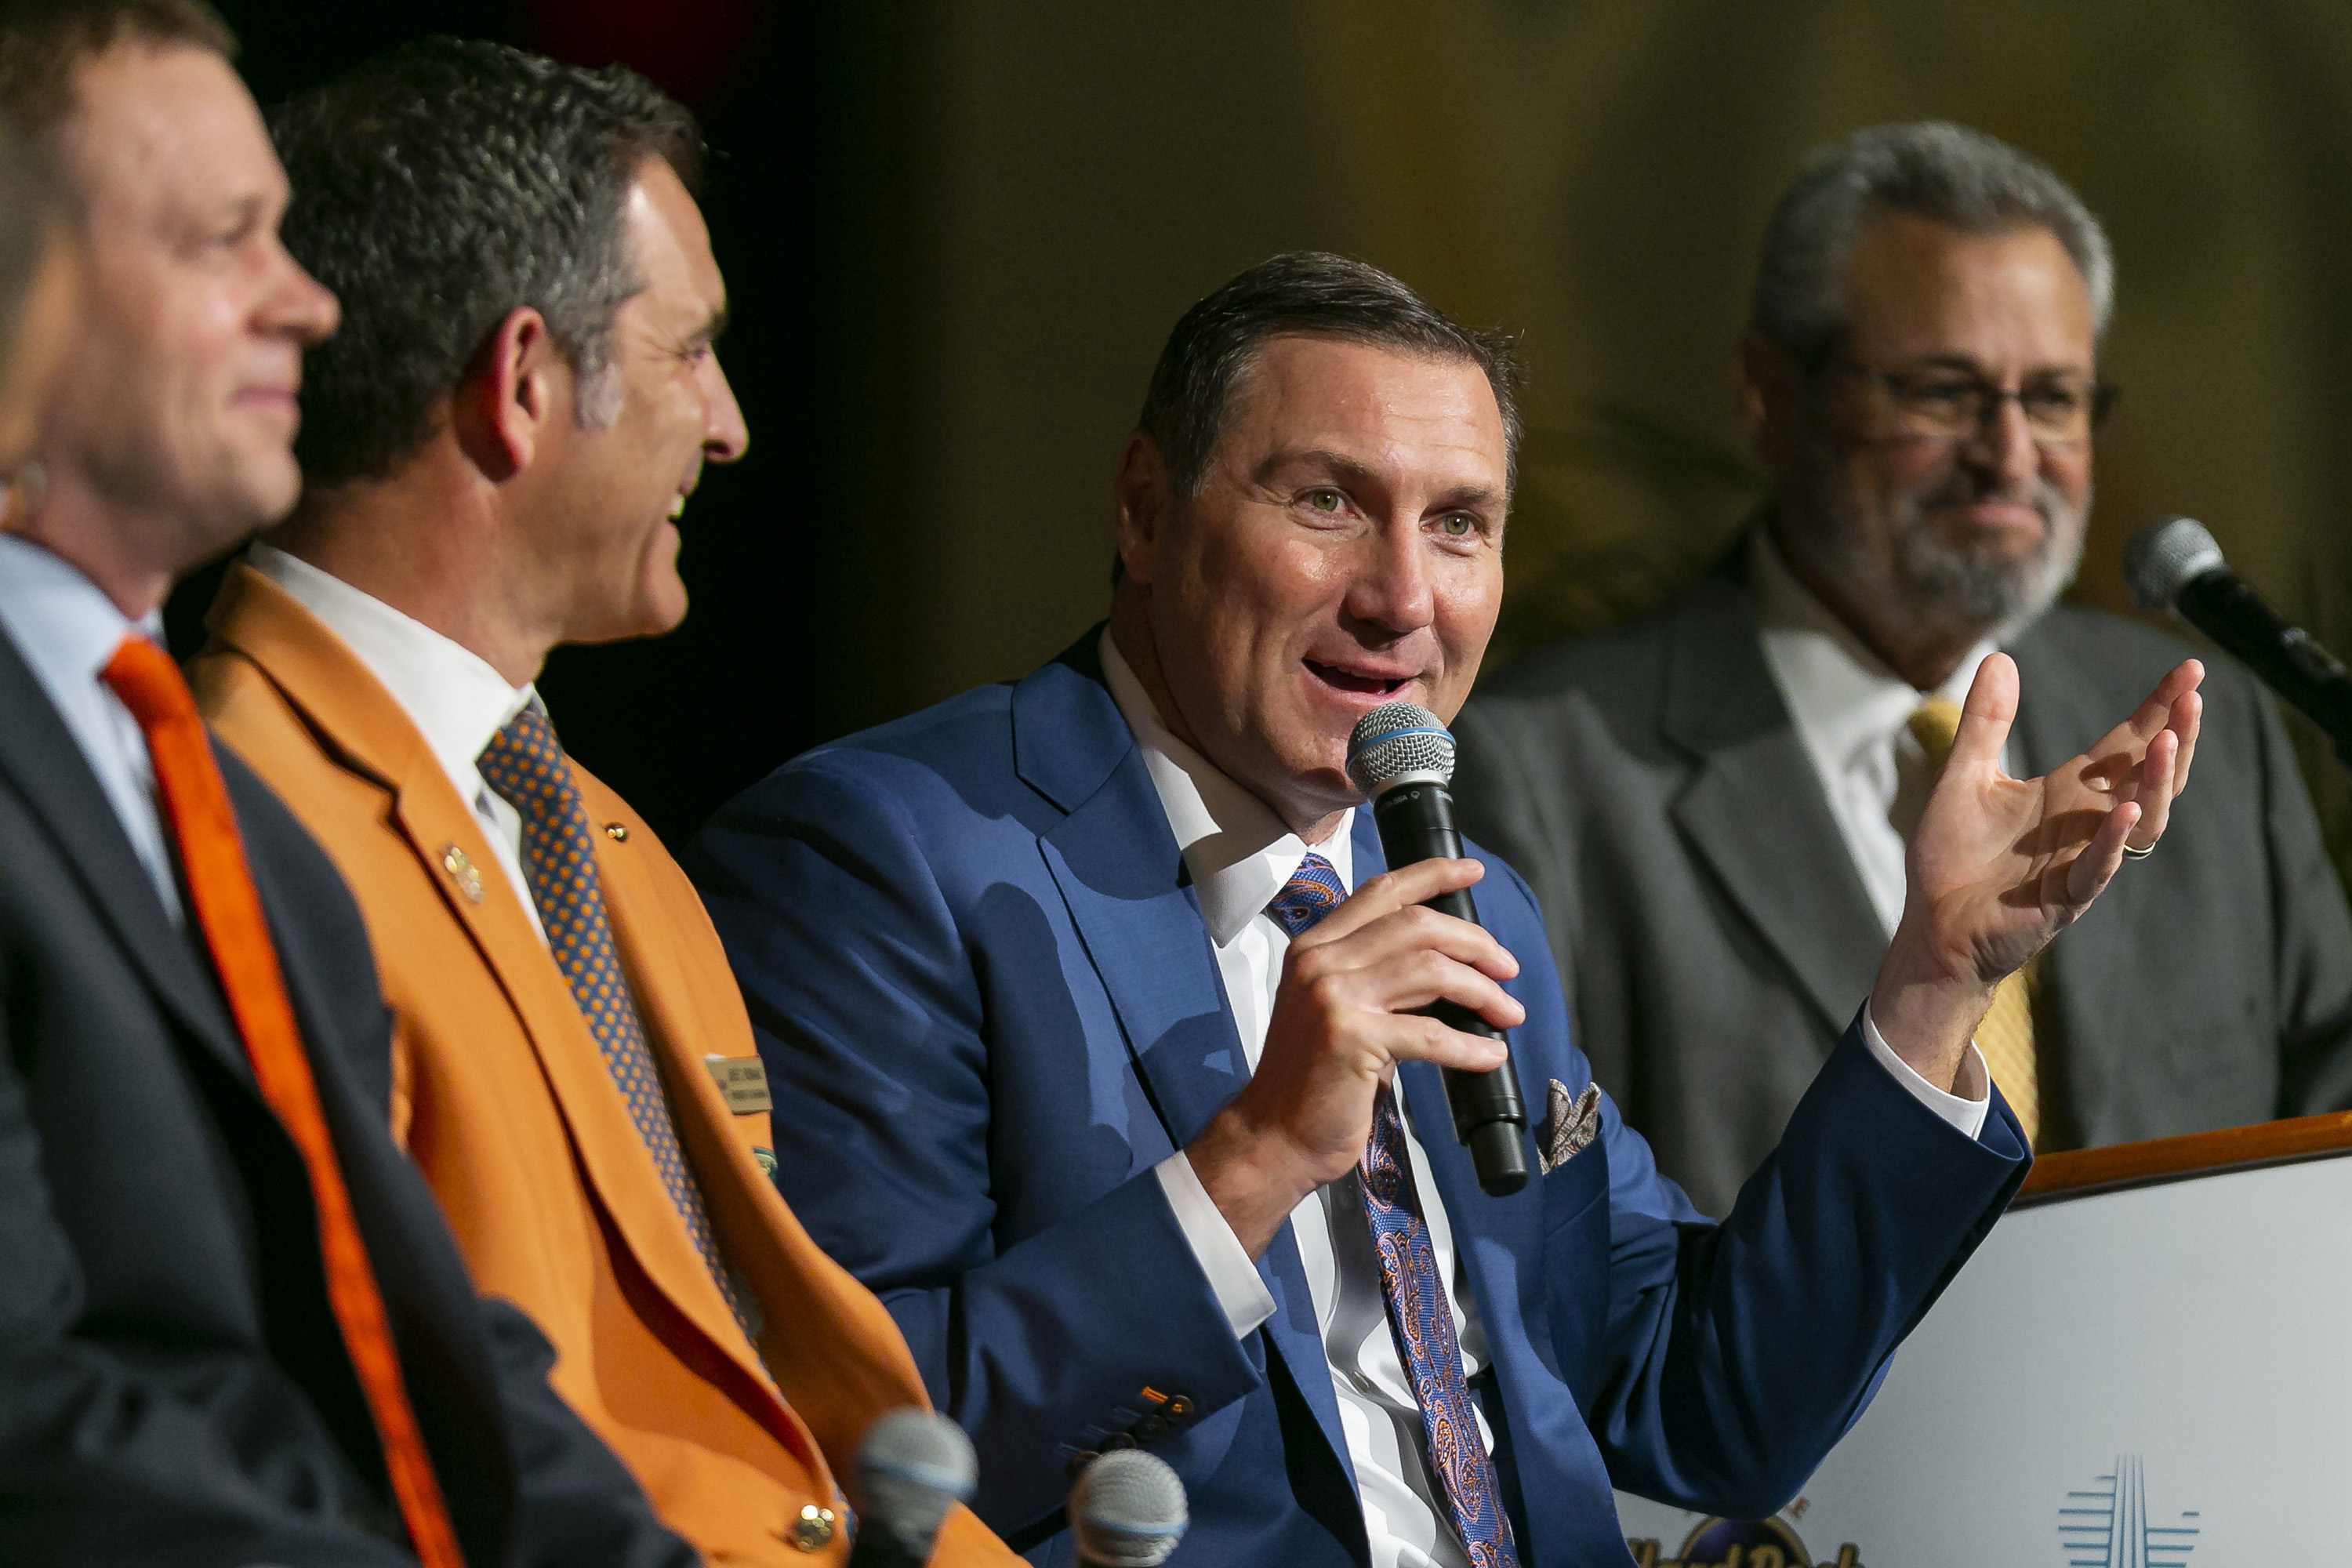 Mike Bianchi: Gators better hope Dan Mullen isn't hired by Cowboys, Jaguars or another desperate NFL team